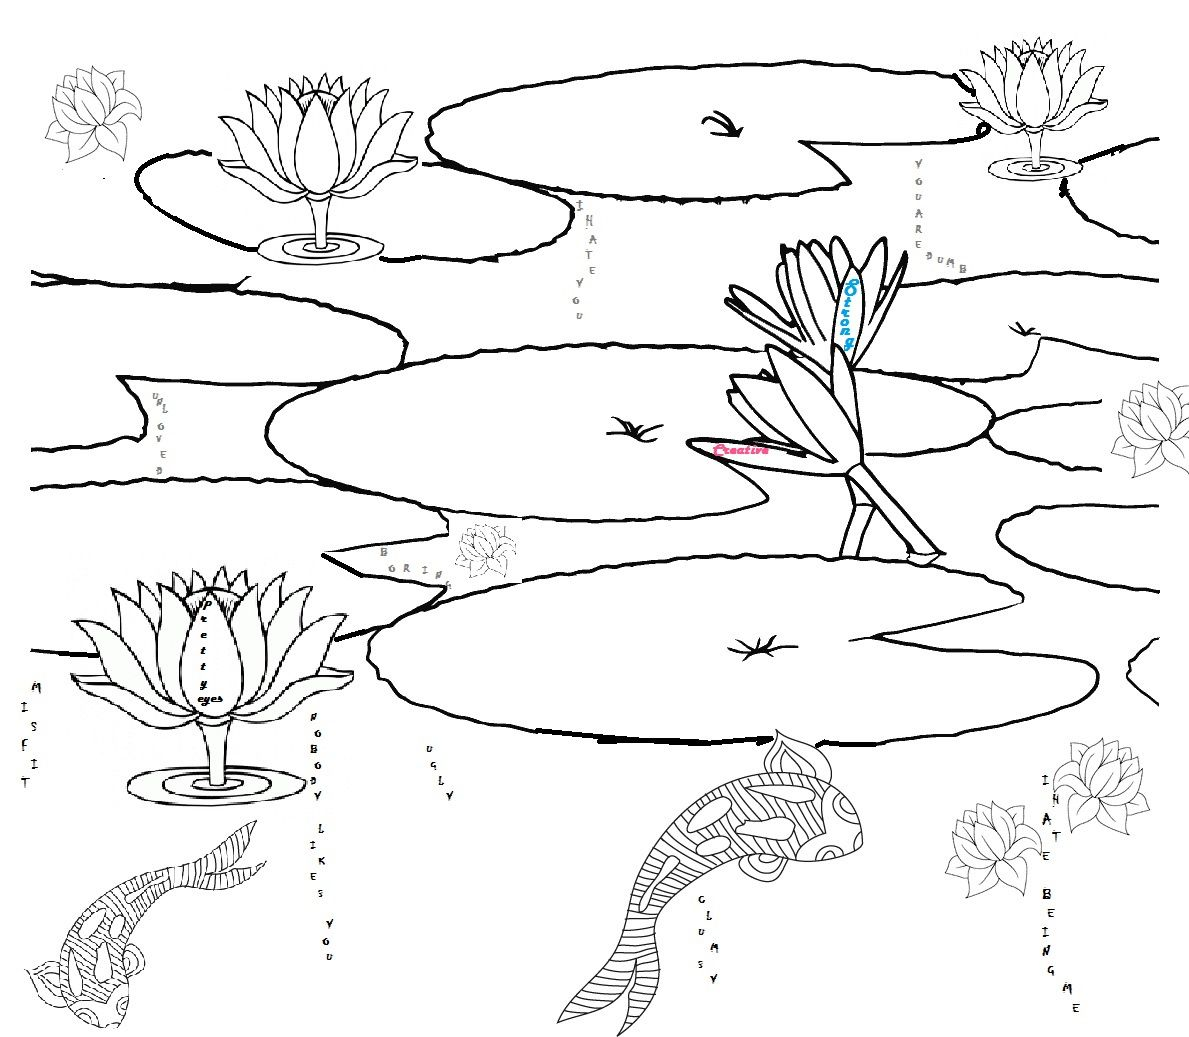 Printable Pond Habitat Coloring Page | ponds | Pinterest